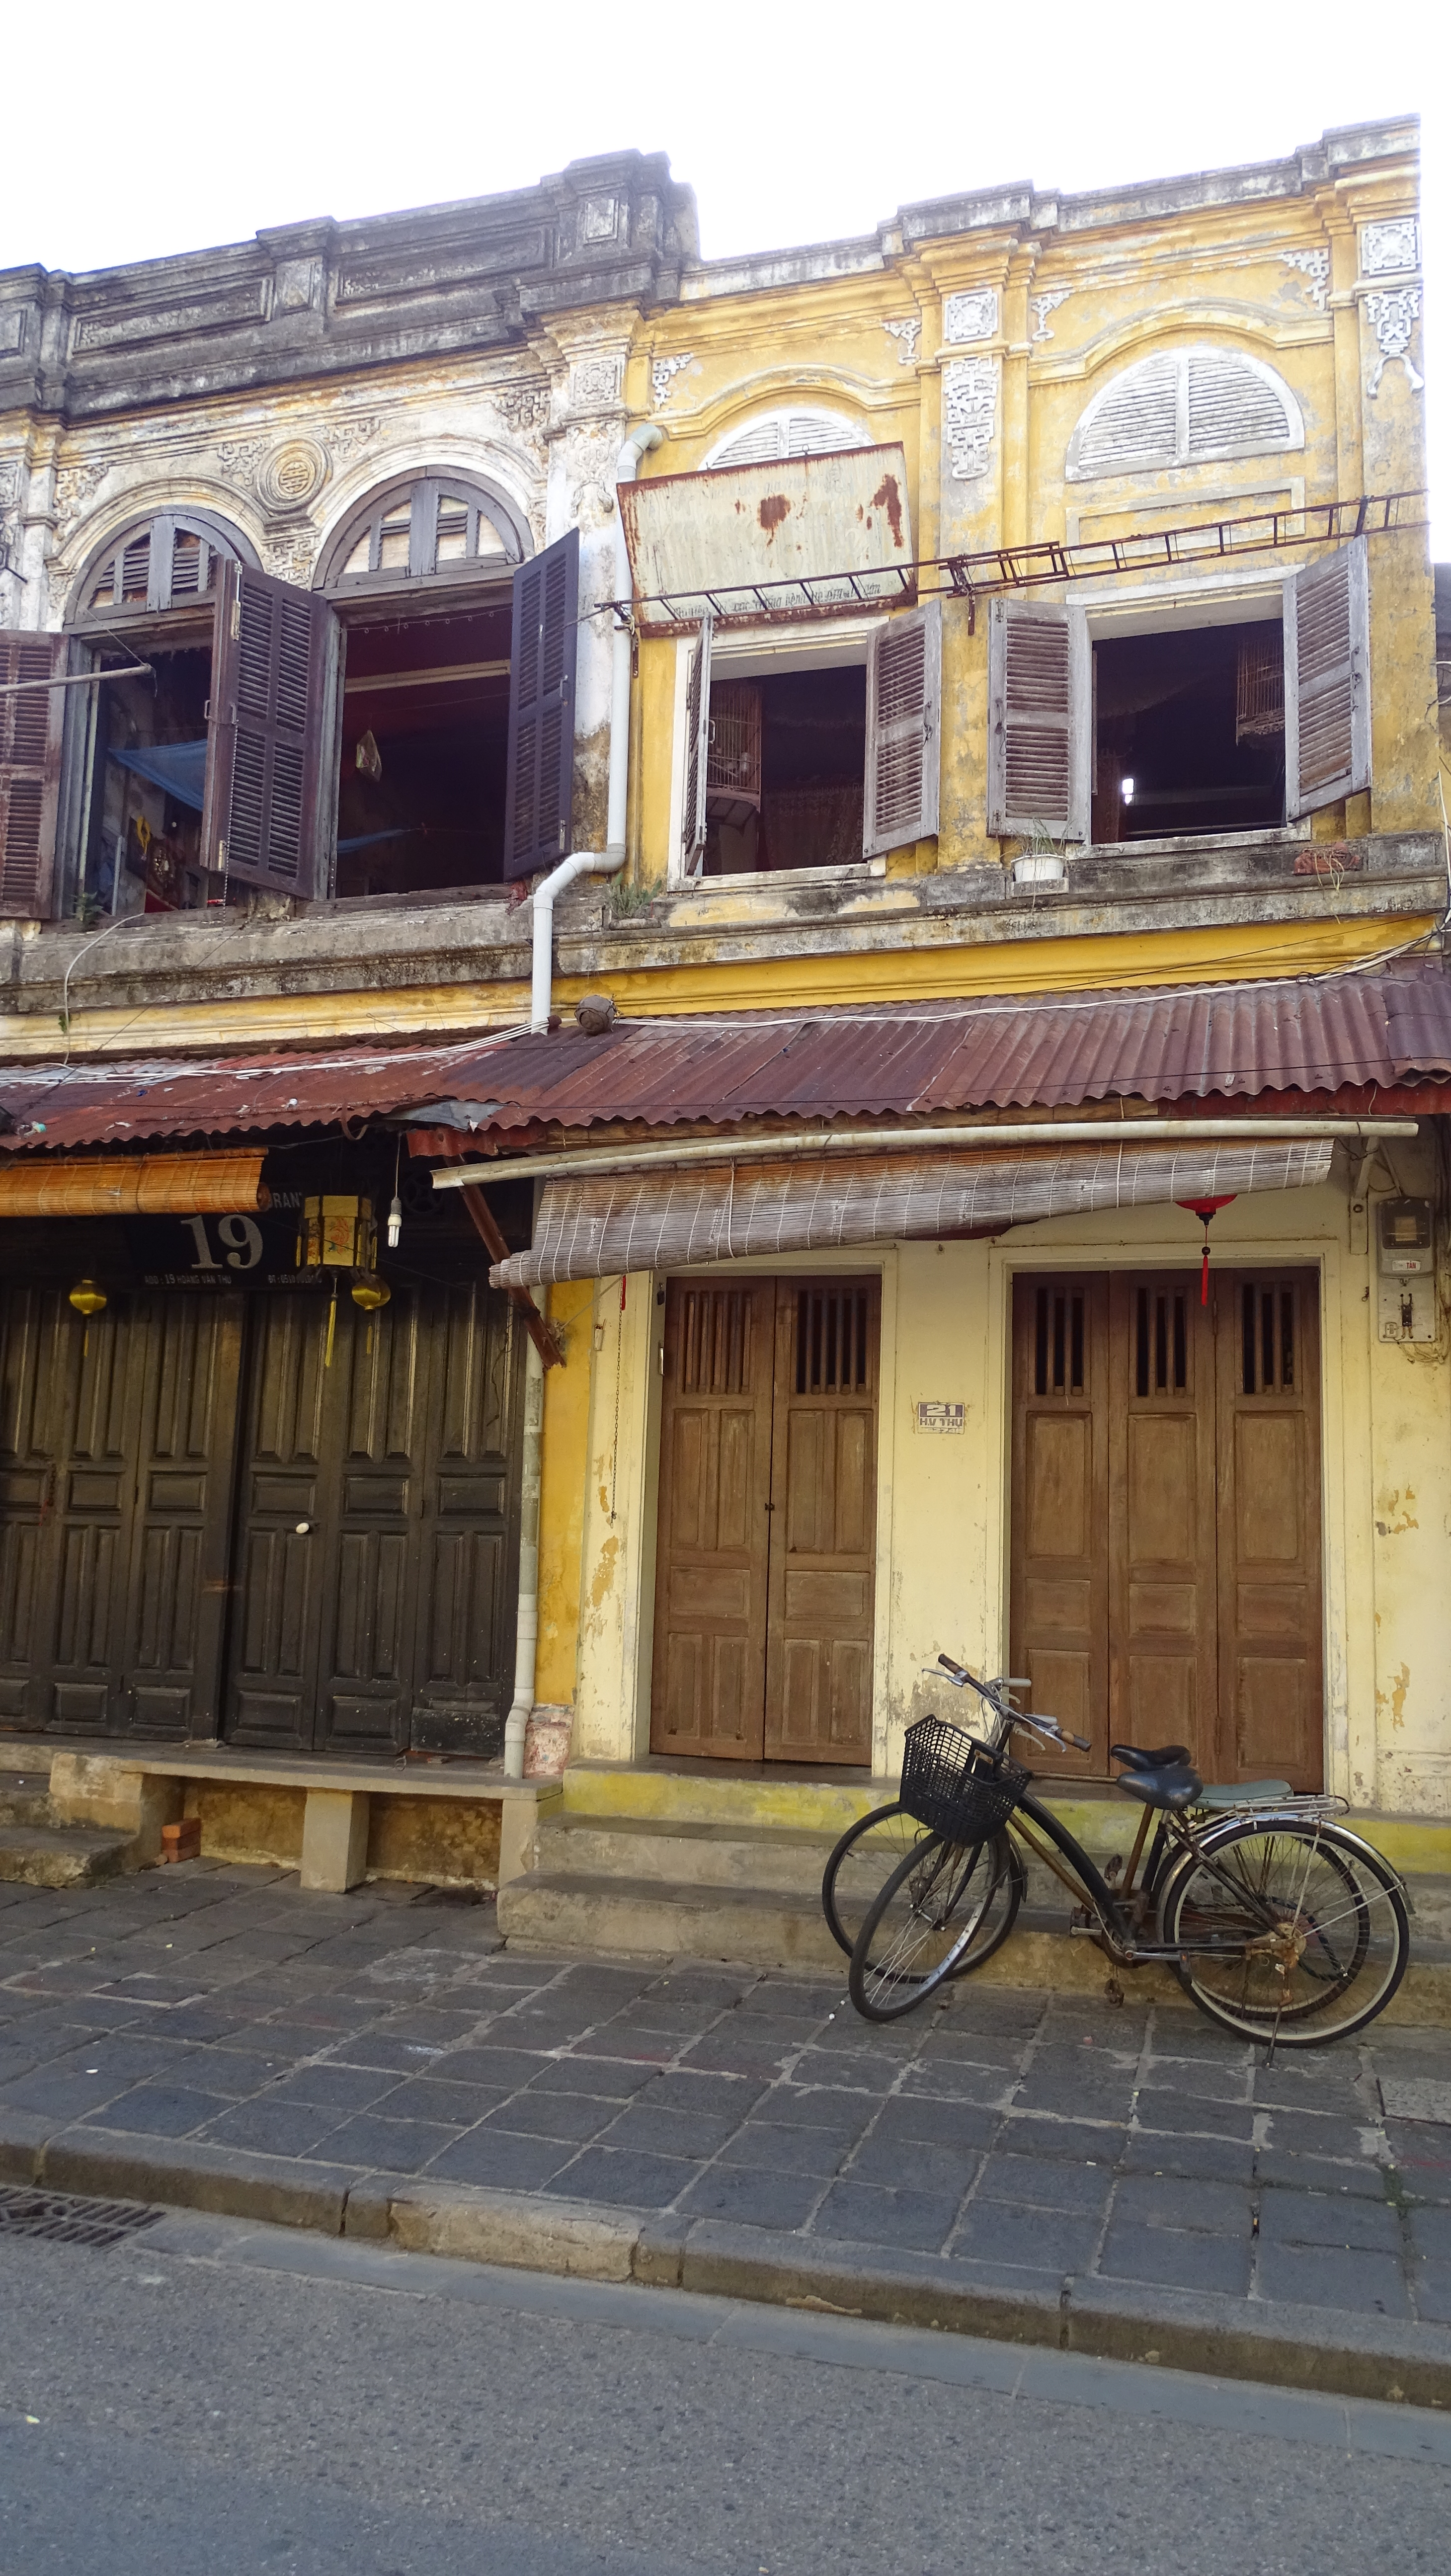 Two bicycles parked in front of the wooden doors of a yellow, historical house in Hoi An old town